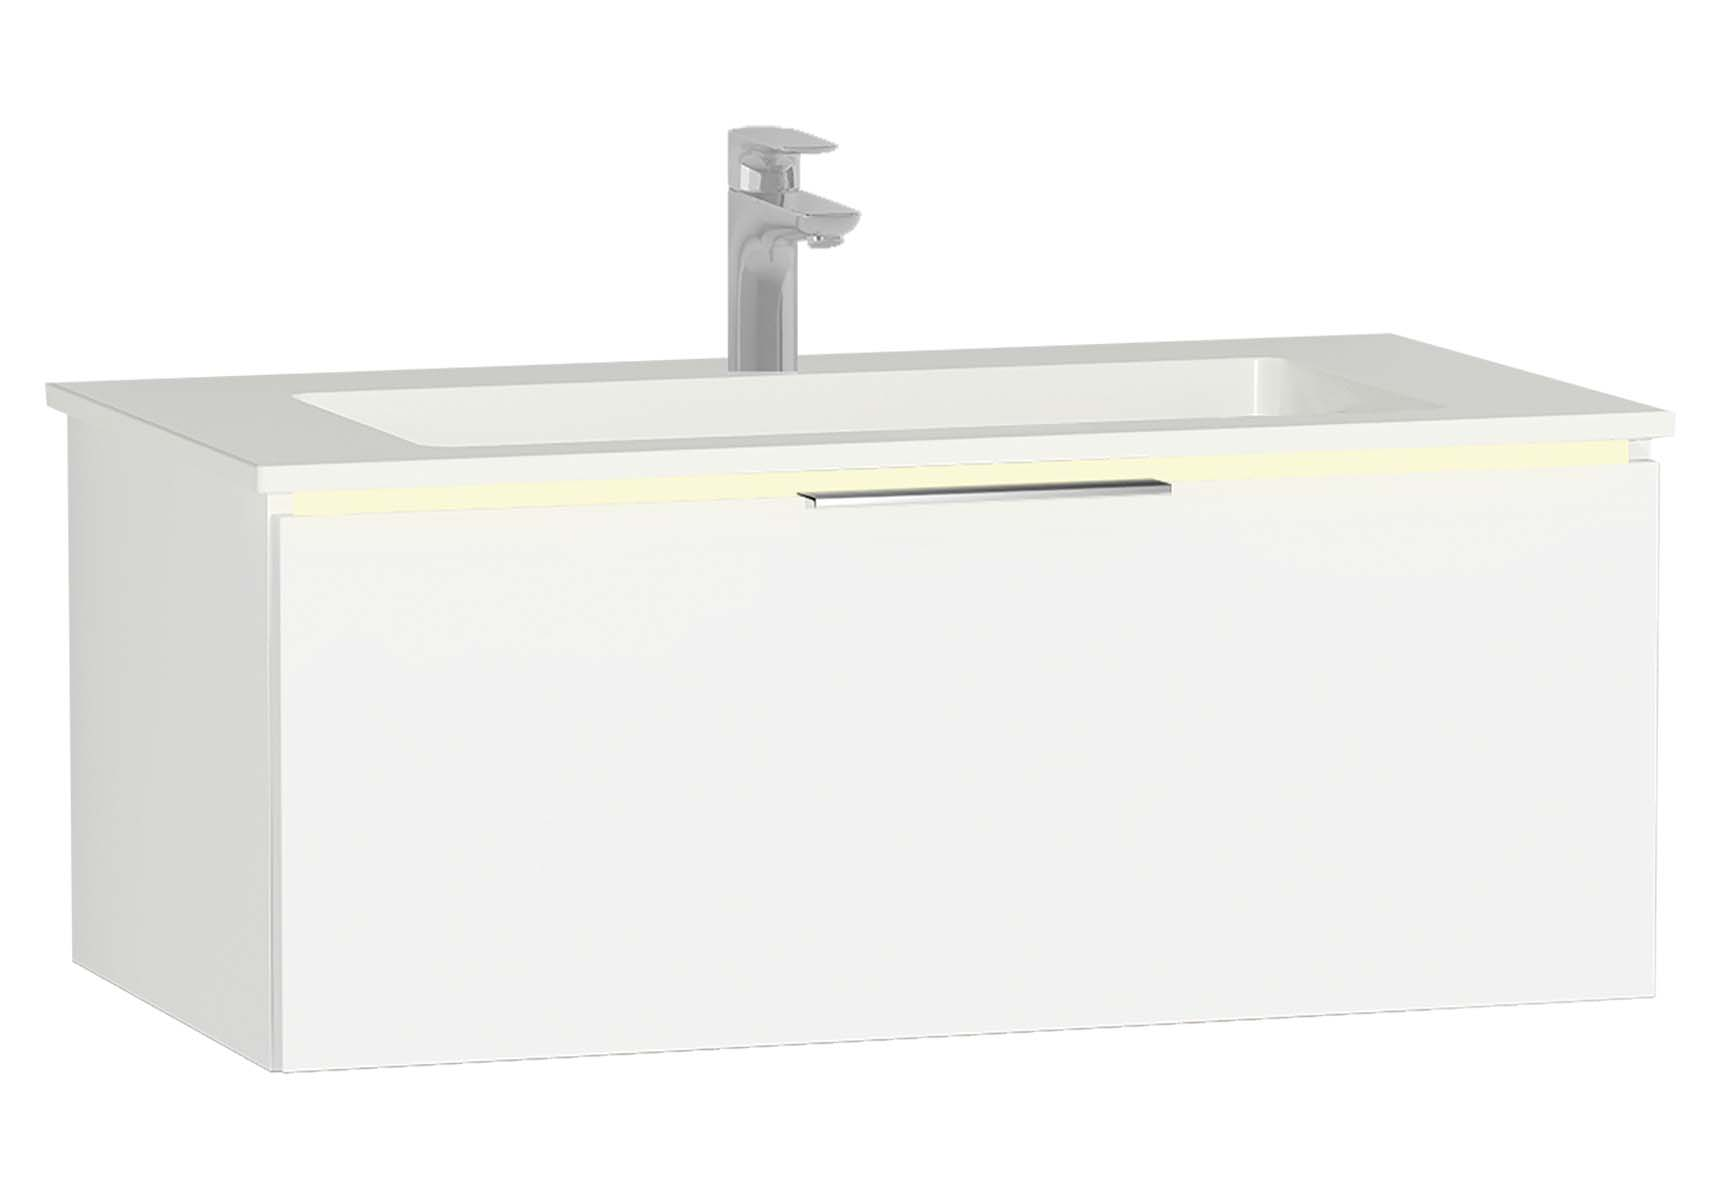 Central Washbasin Unit with 1 drawer, 90 cm, White High Gloss, Infinit Washbasin, Led